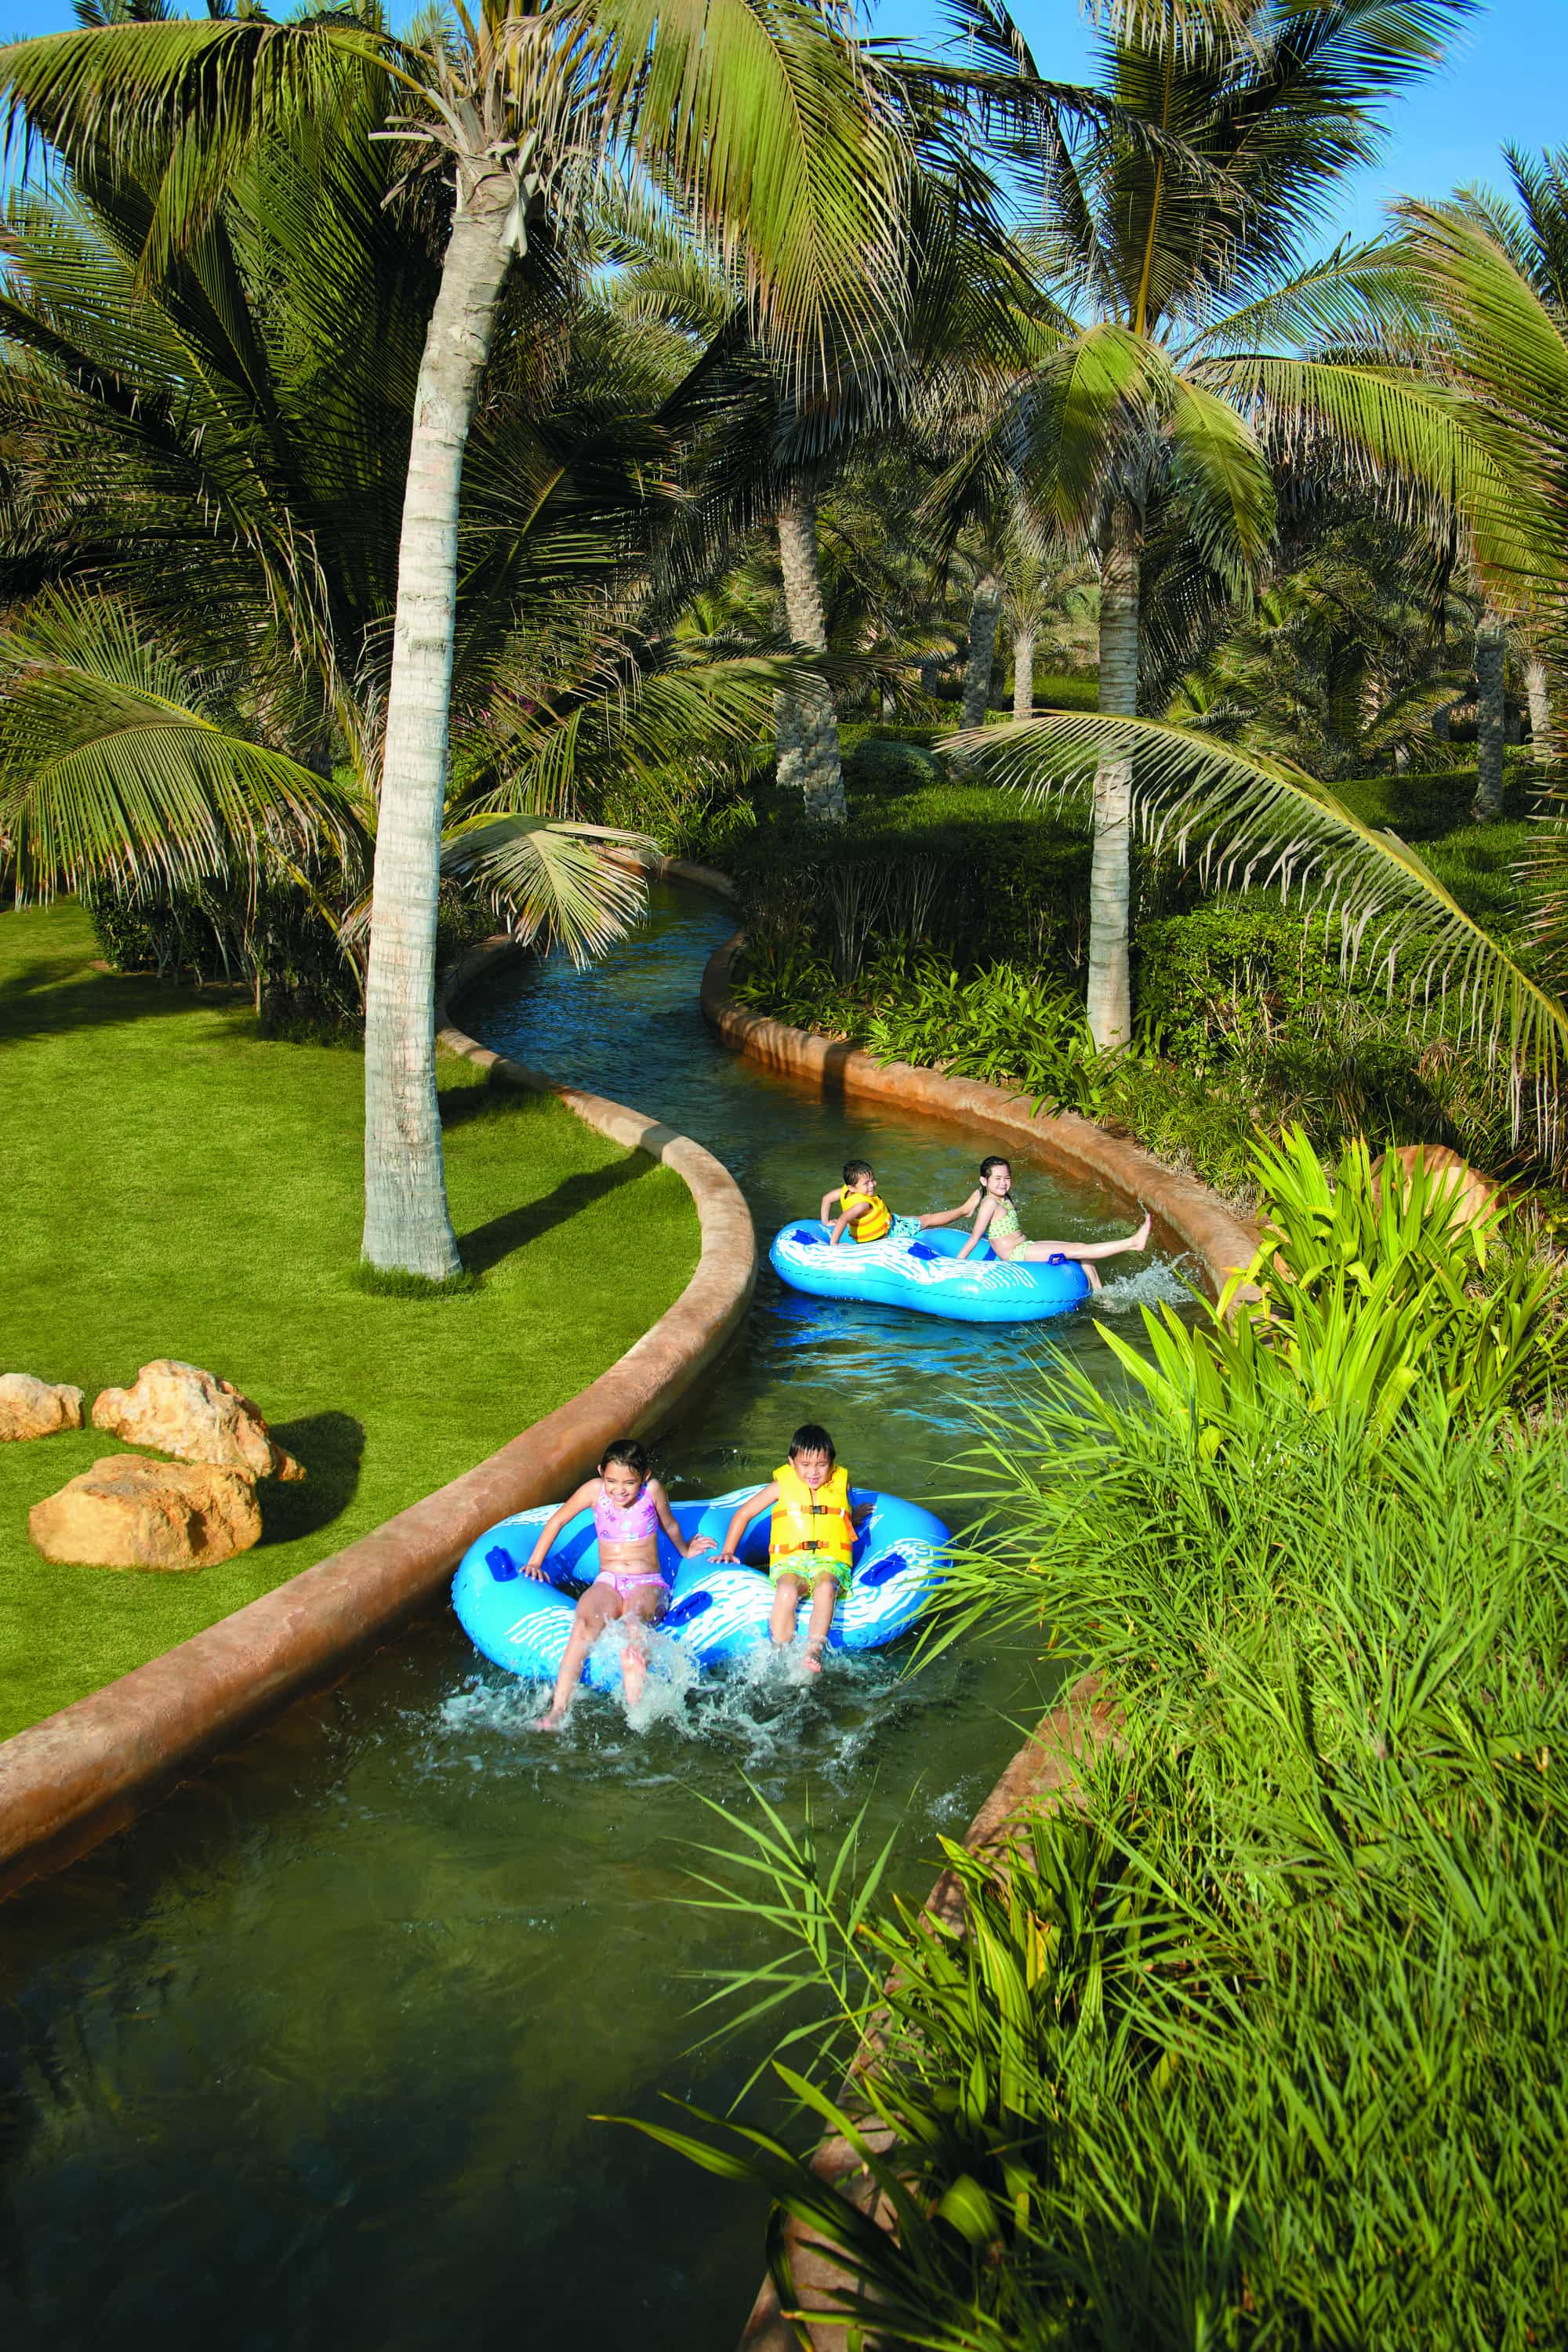 Shangri-La Bar Al Jissah Resort's lazy river